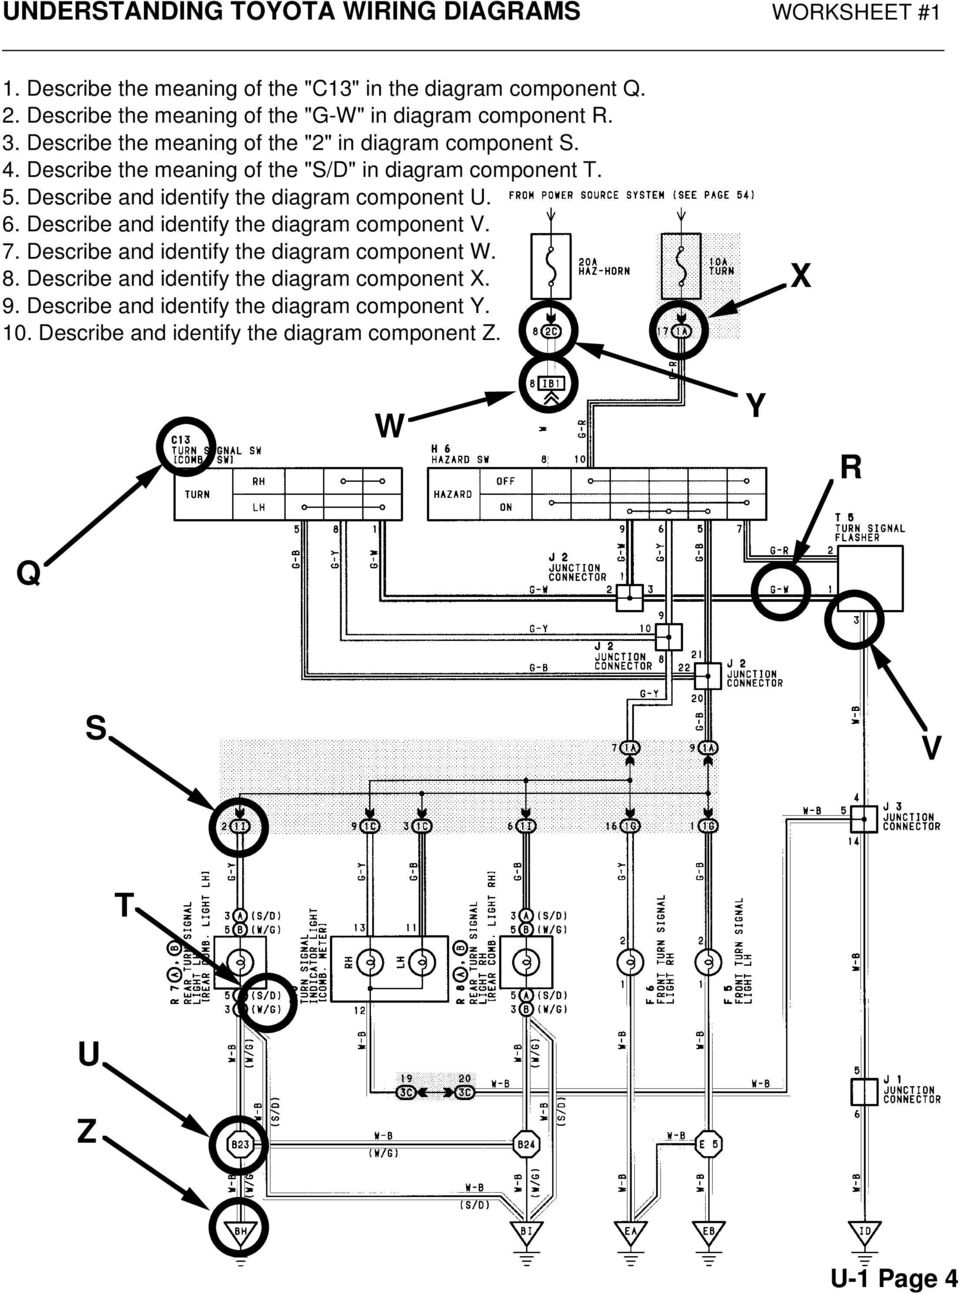 medium resolution of describe the meaning of the s d in diagram component t 5 7 understanding toyota wiring diagrams worksheet